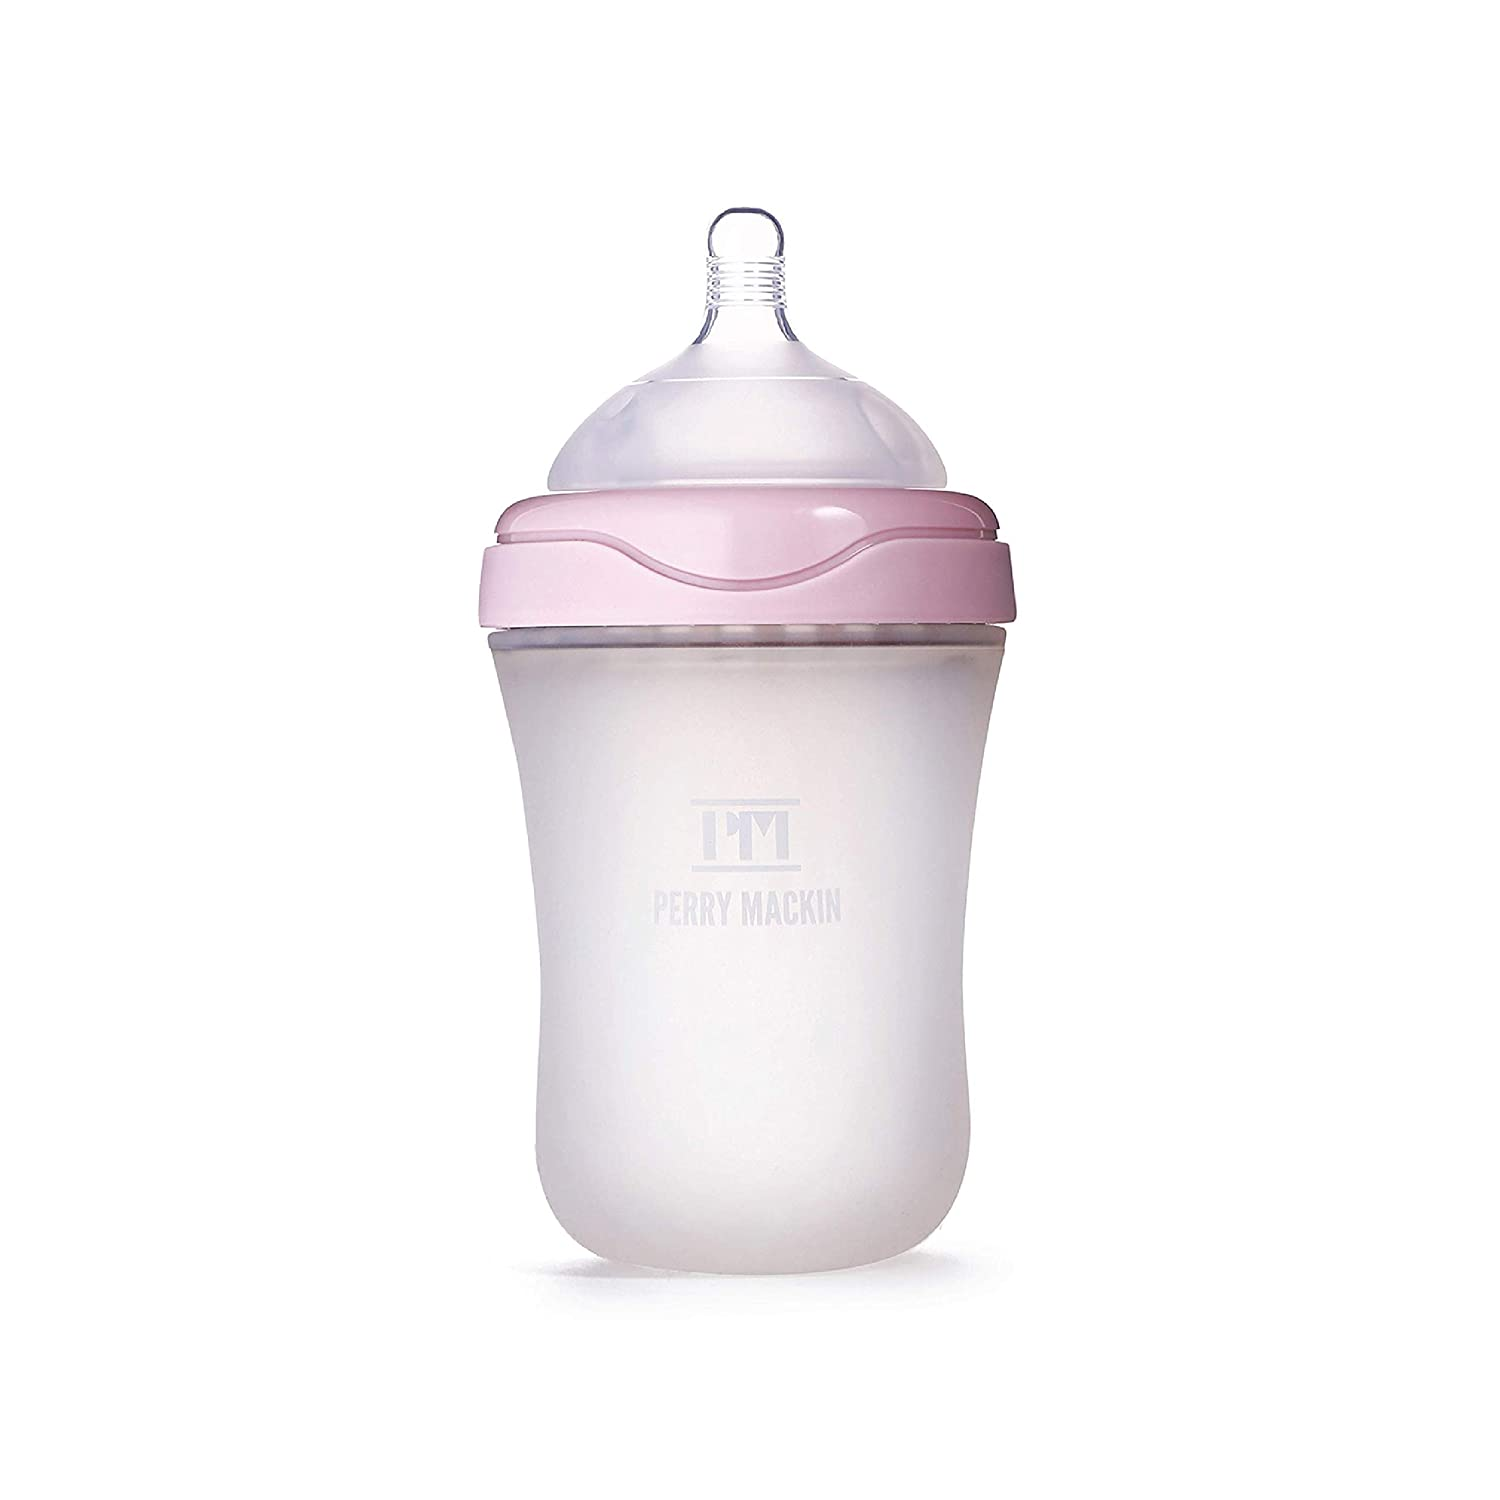 Perry Mackin Anti-Colic Silicone Baby Bottle, Pink 9 Ounces